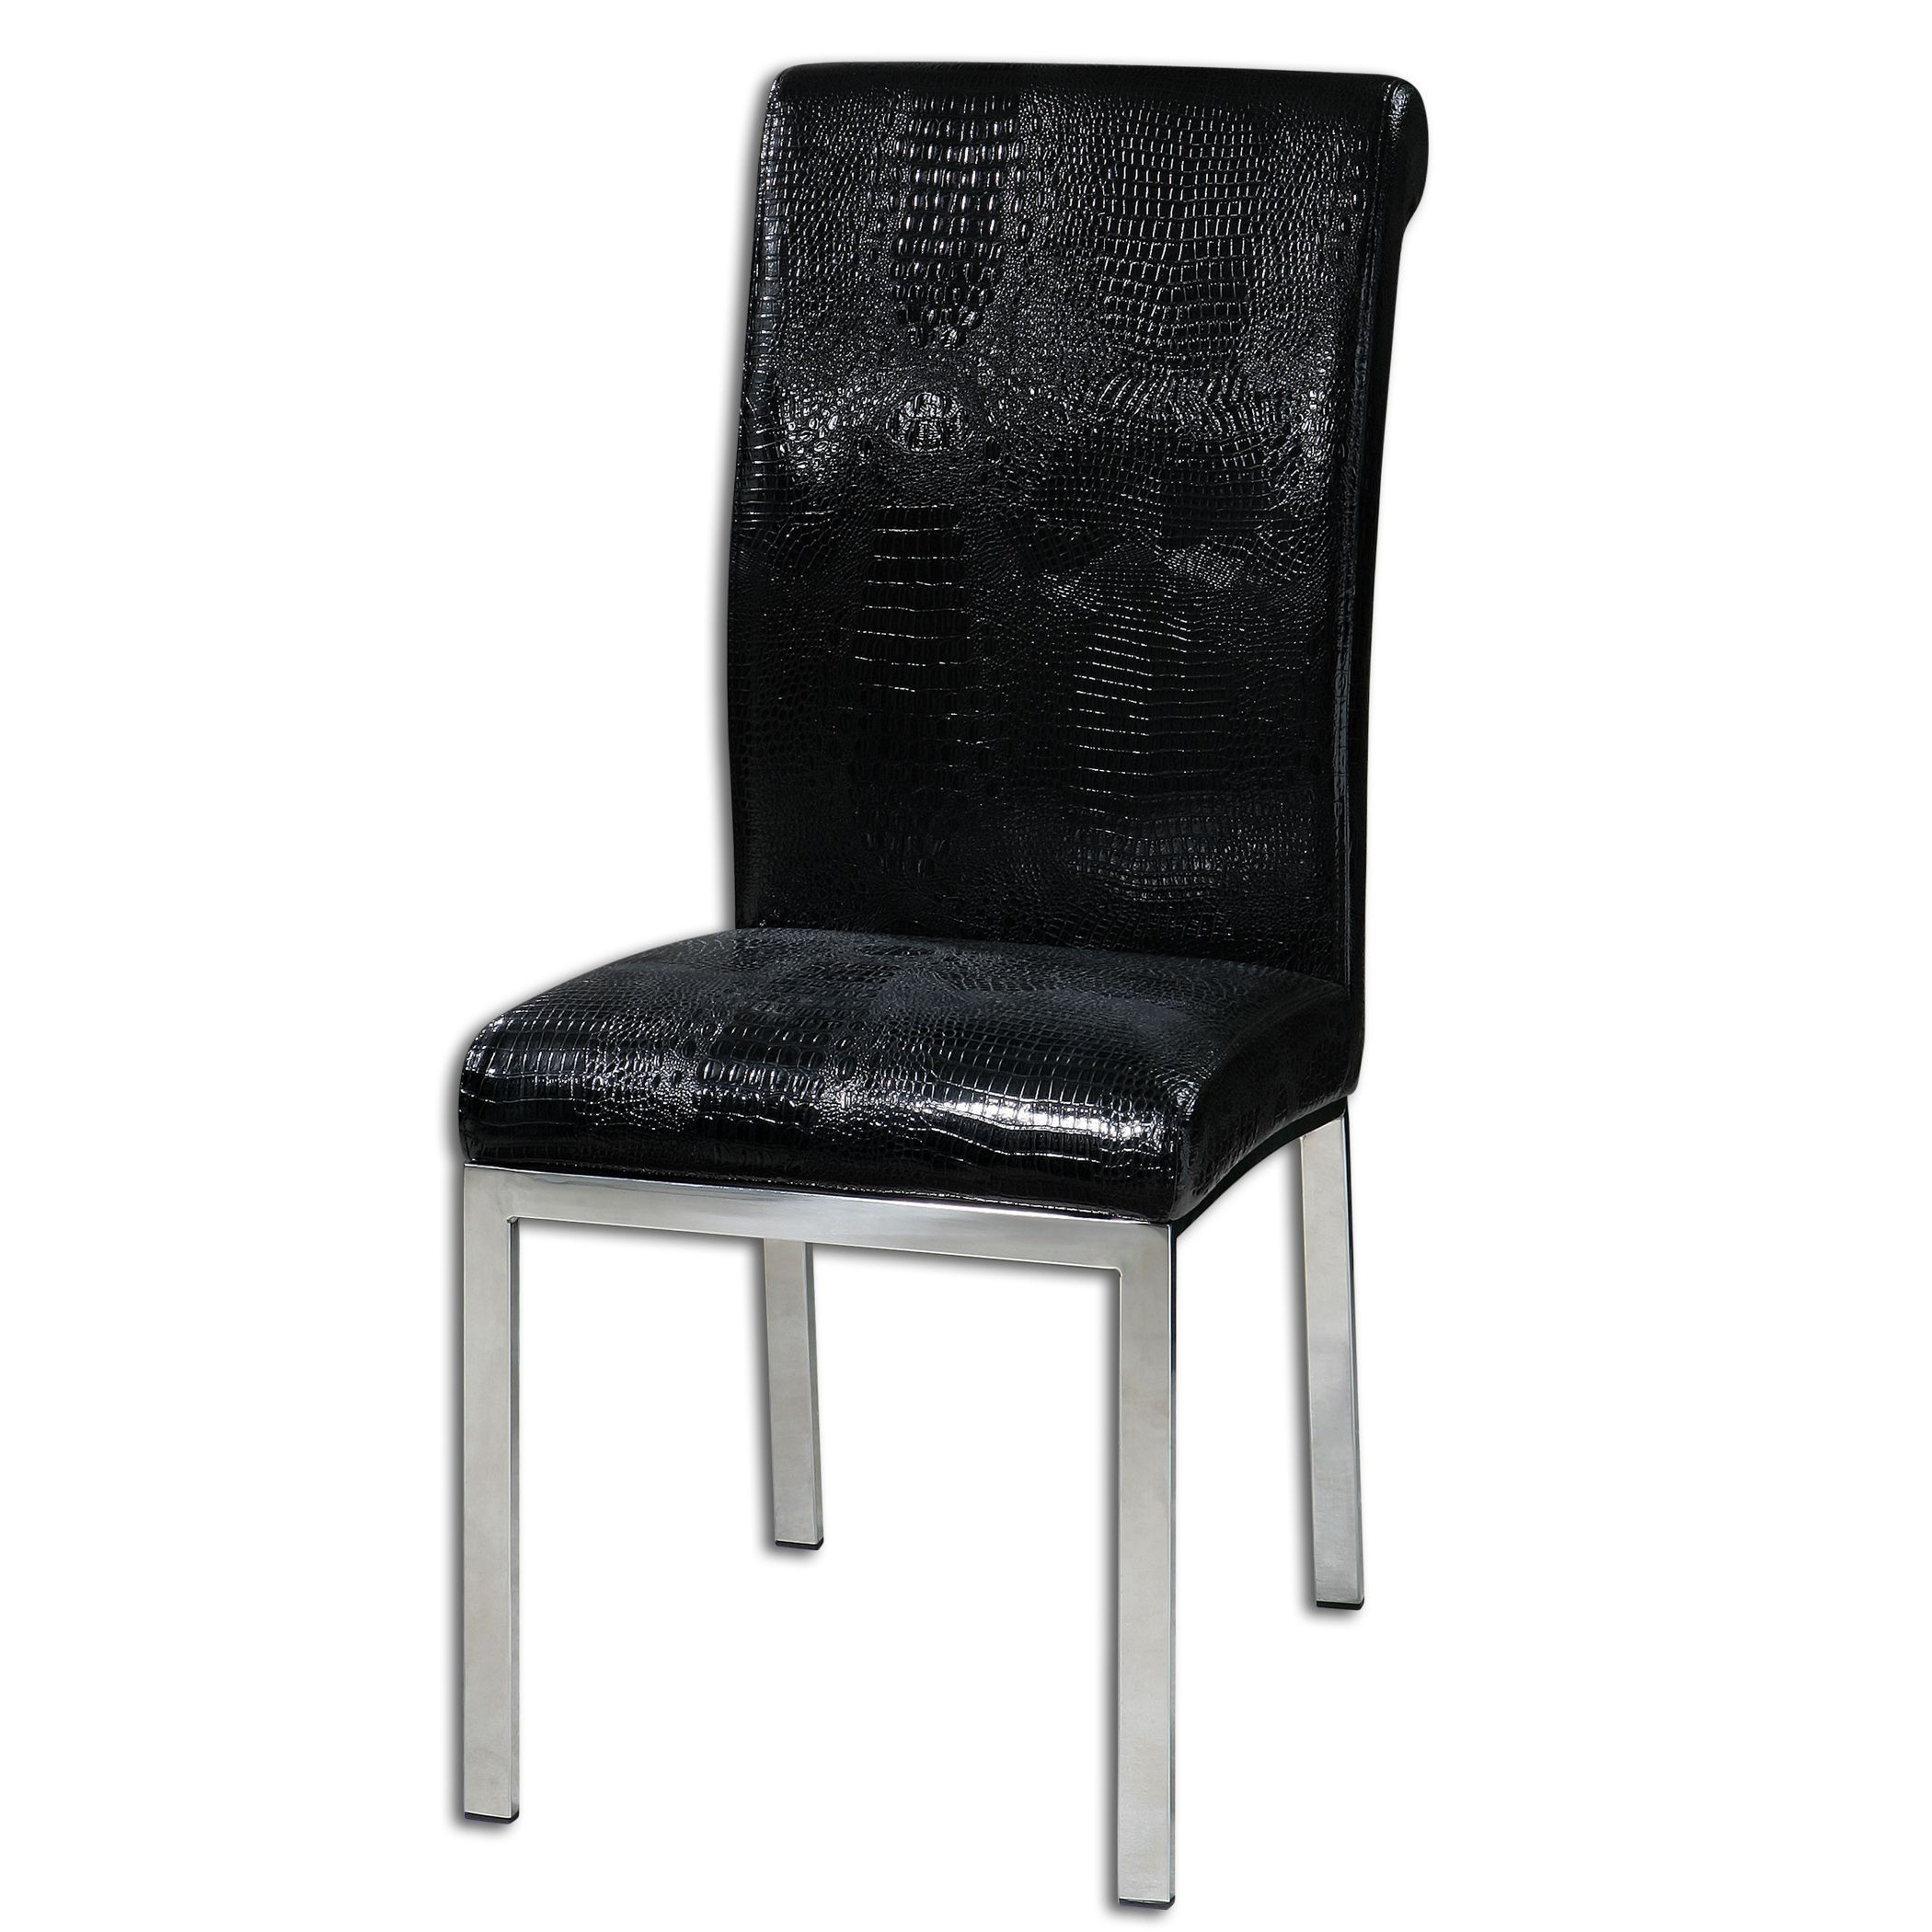 Zaidee Black Accent Chair 23140 Uttermost